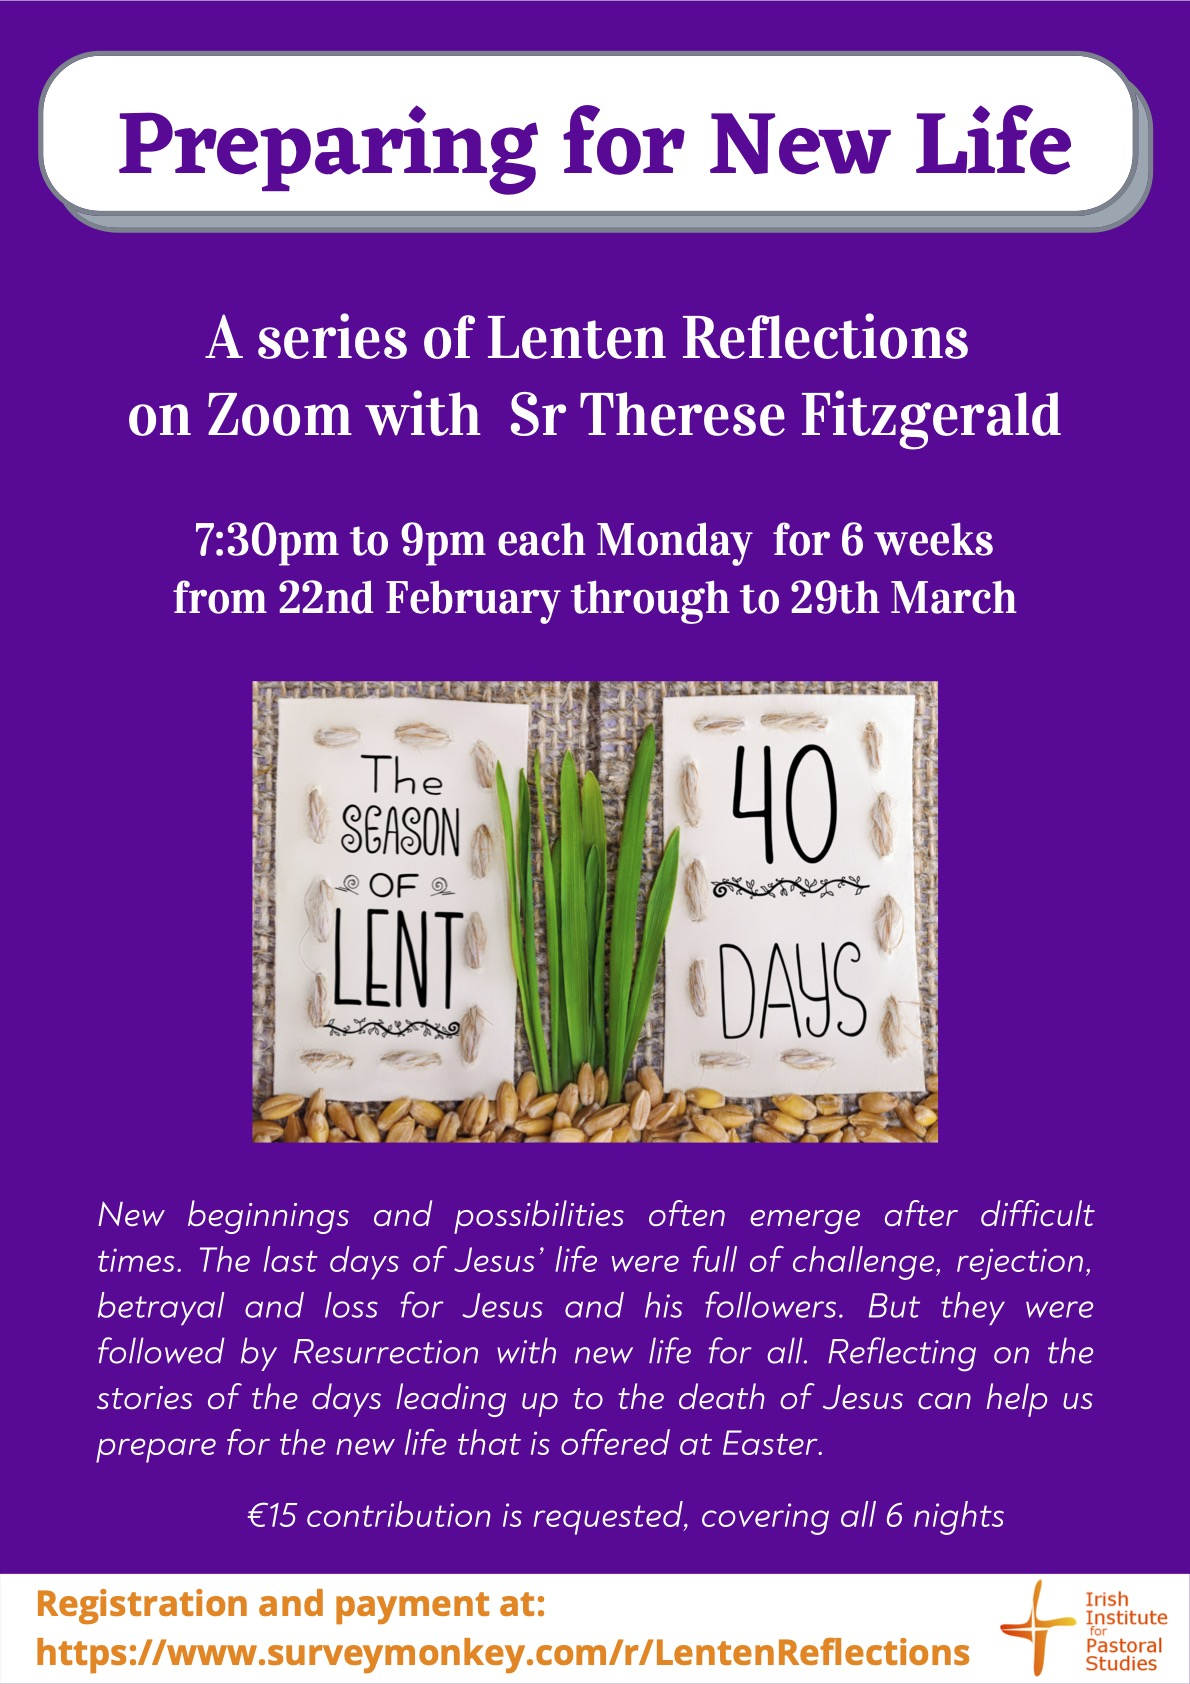 'Preparing for New Life' - six Lenten Reflection evenings with Sr Therese Fitzgerald (Sister of Sion)